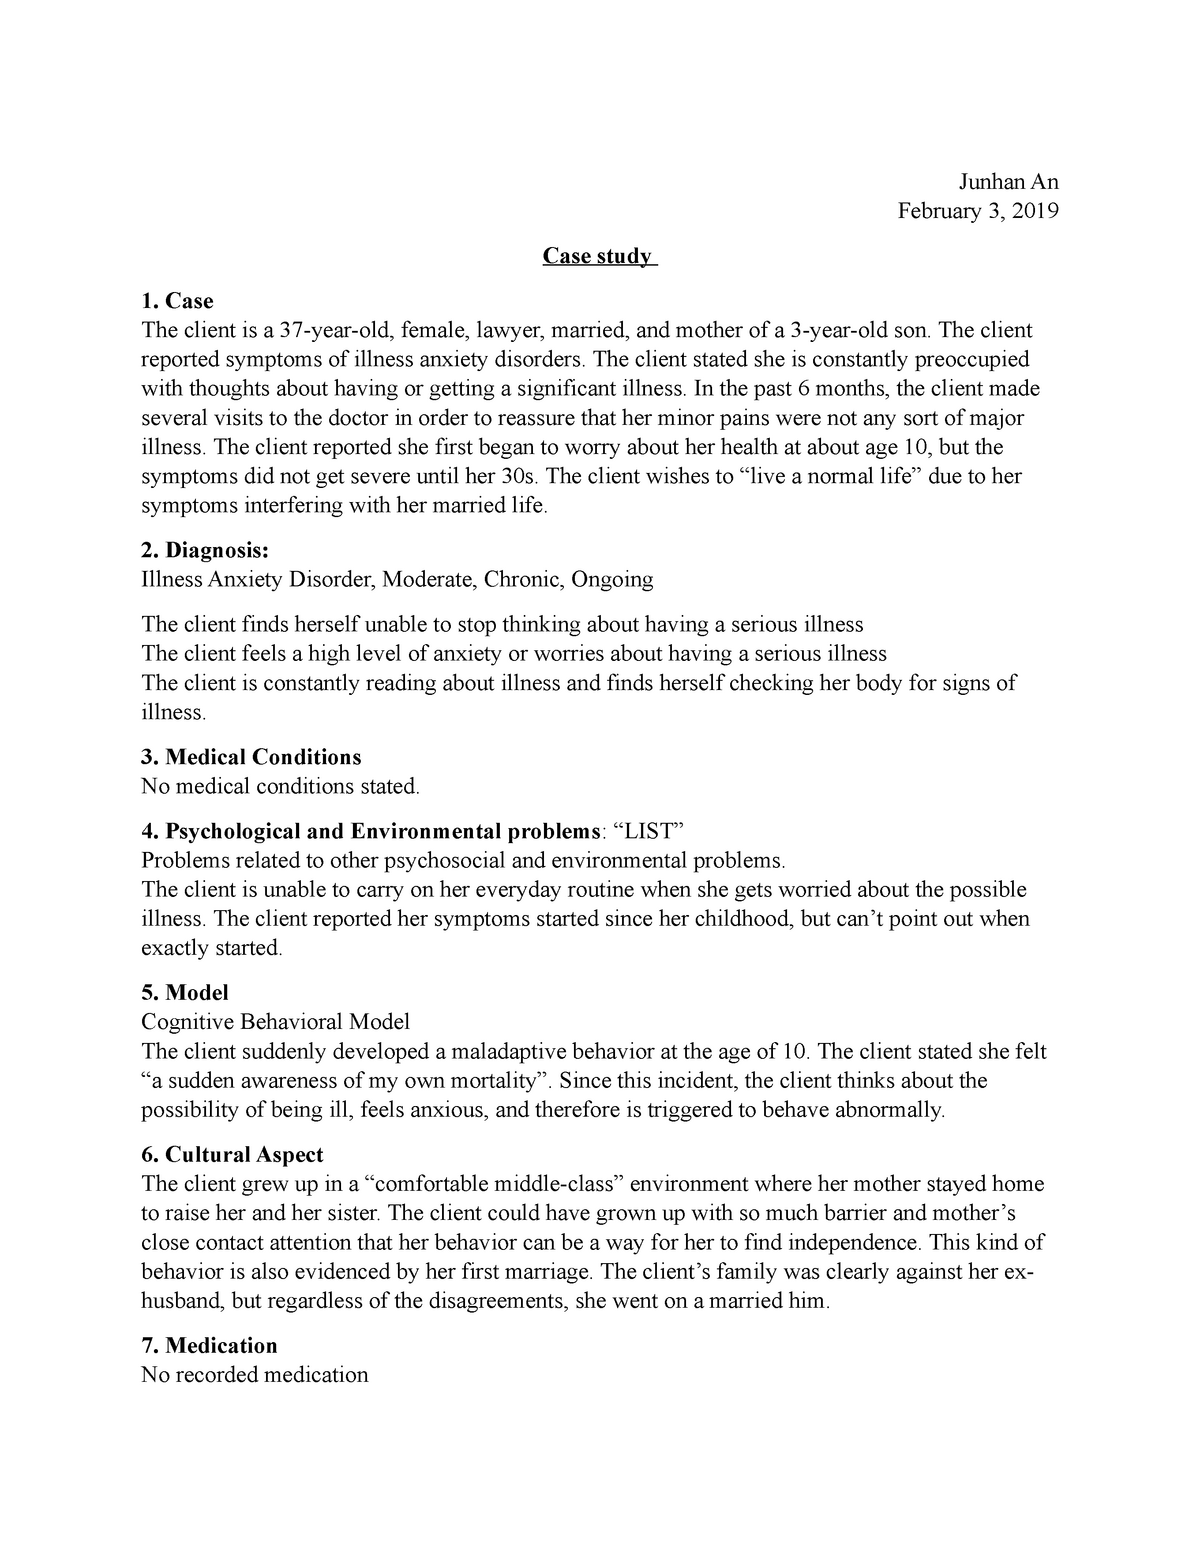 Anxiety case study example maintenance superintendent cover letter